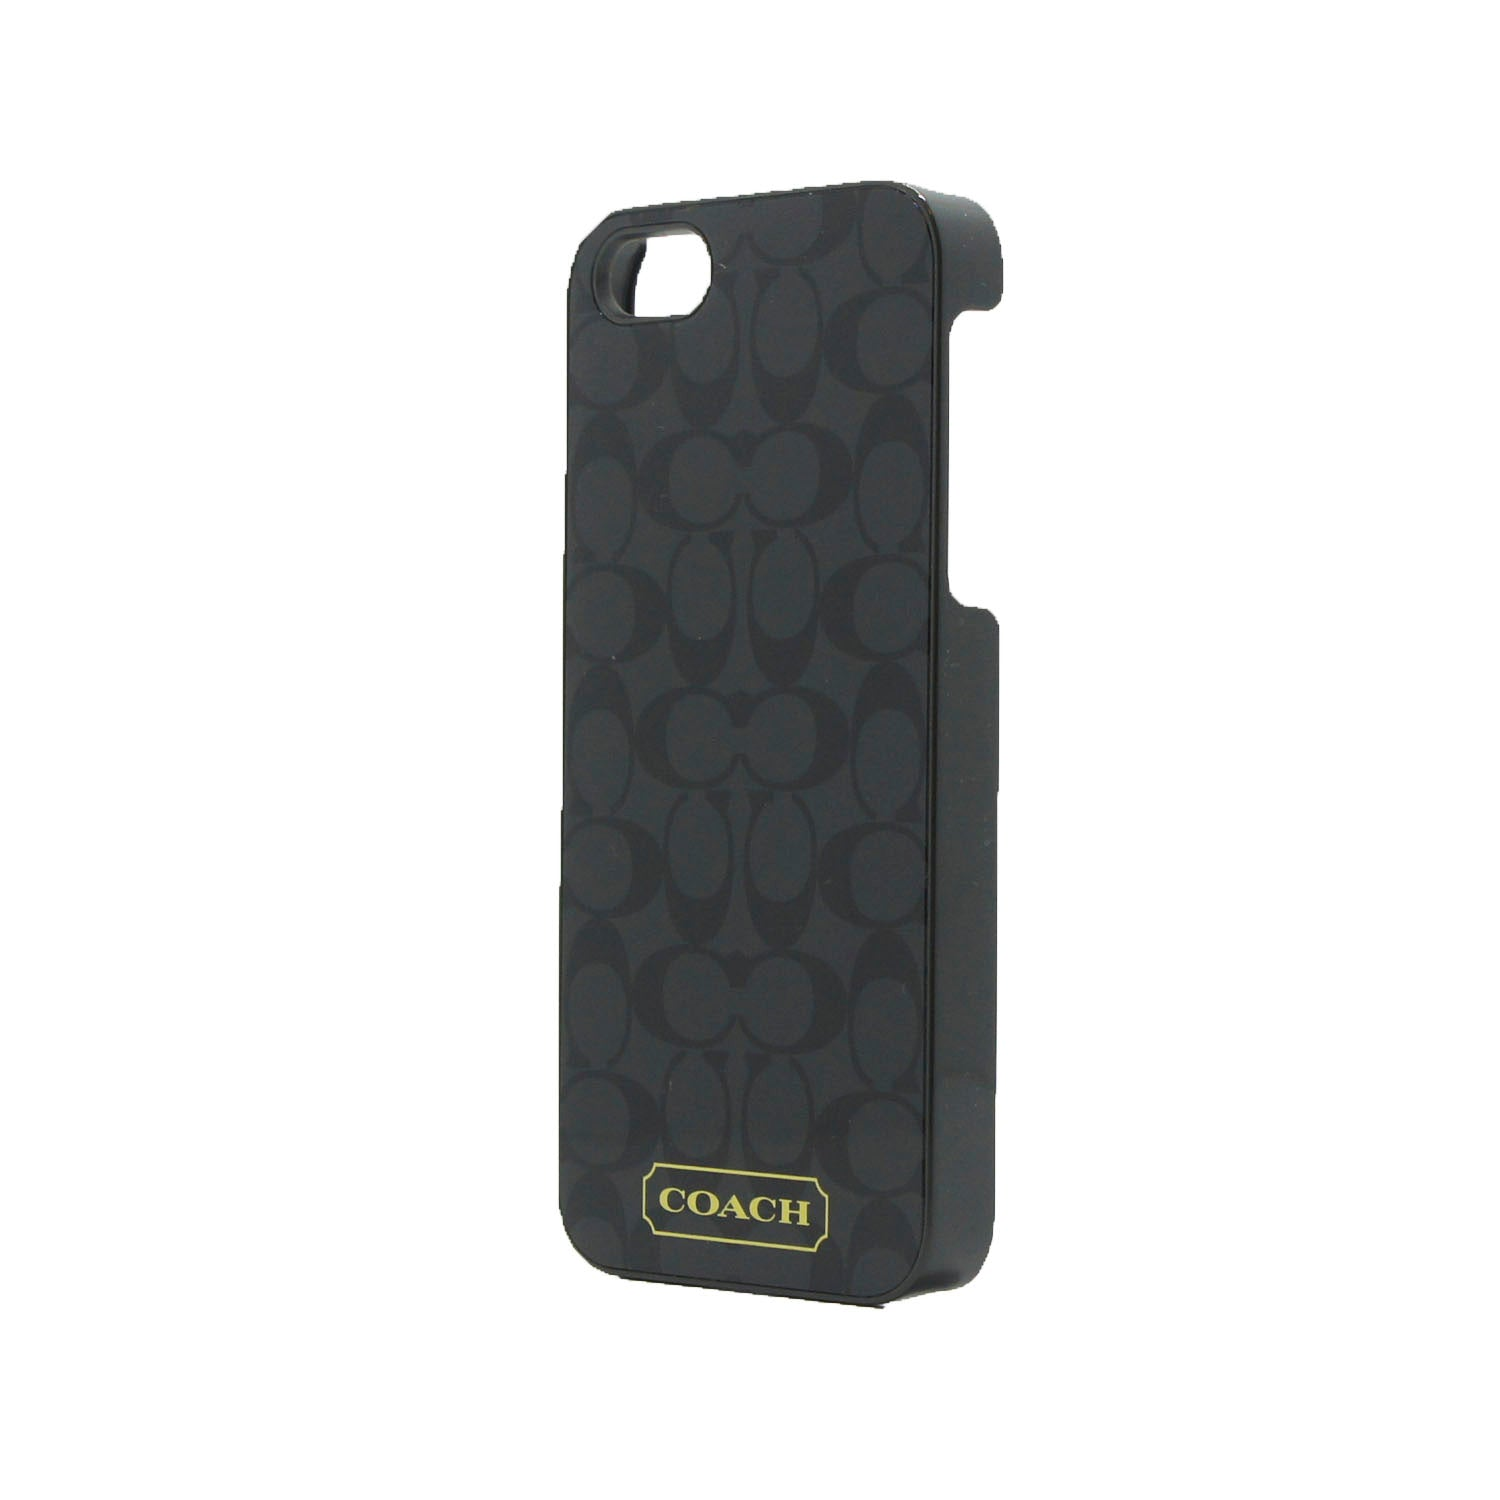 Funda Para iPhone 5 o 5s Coach Signature Black